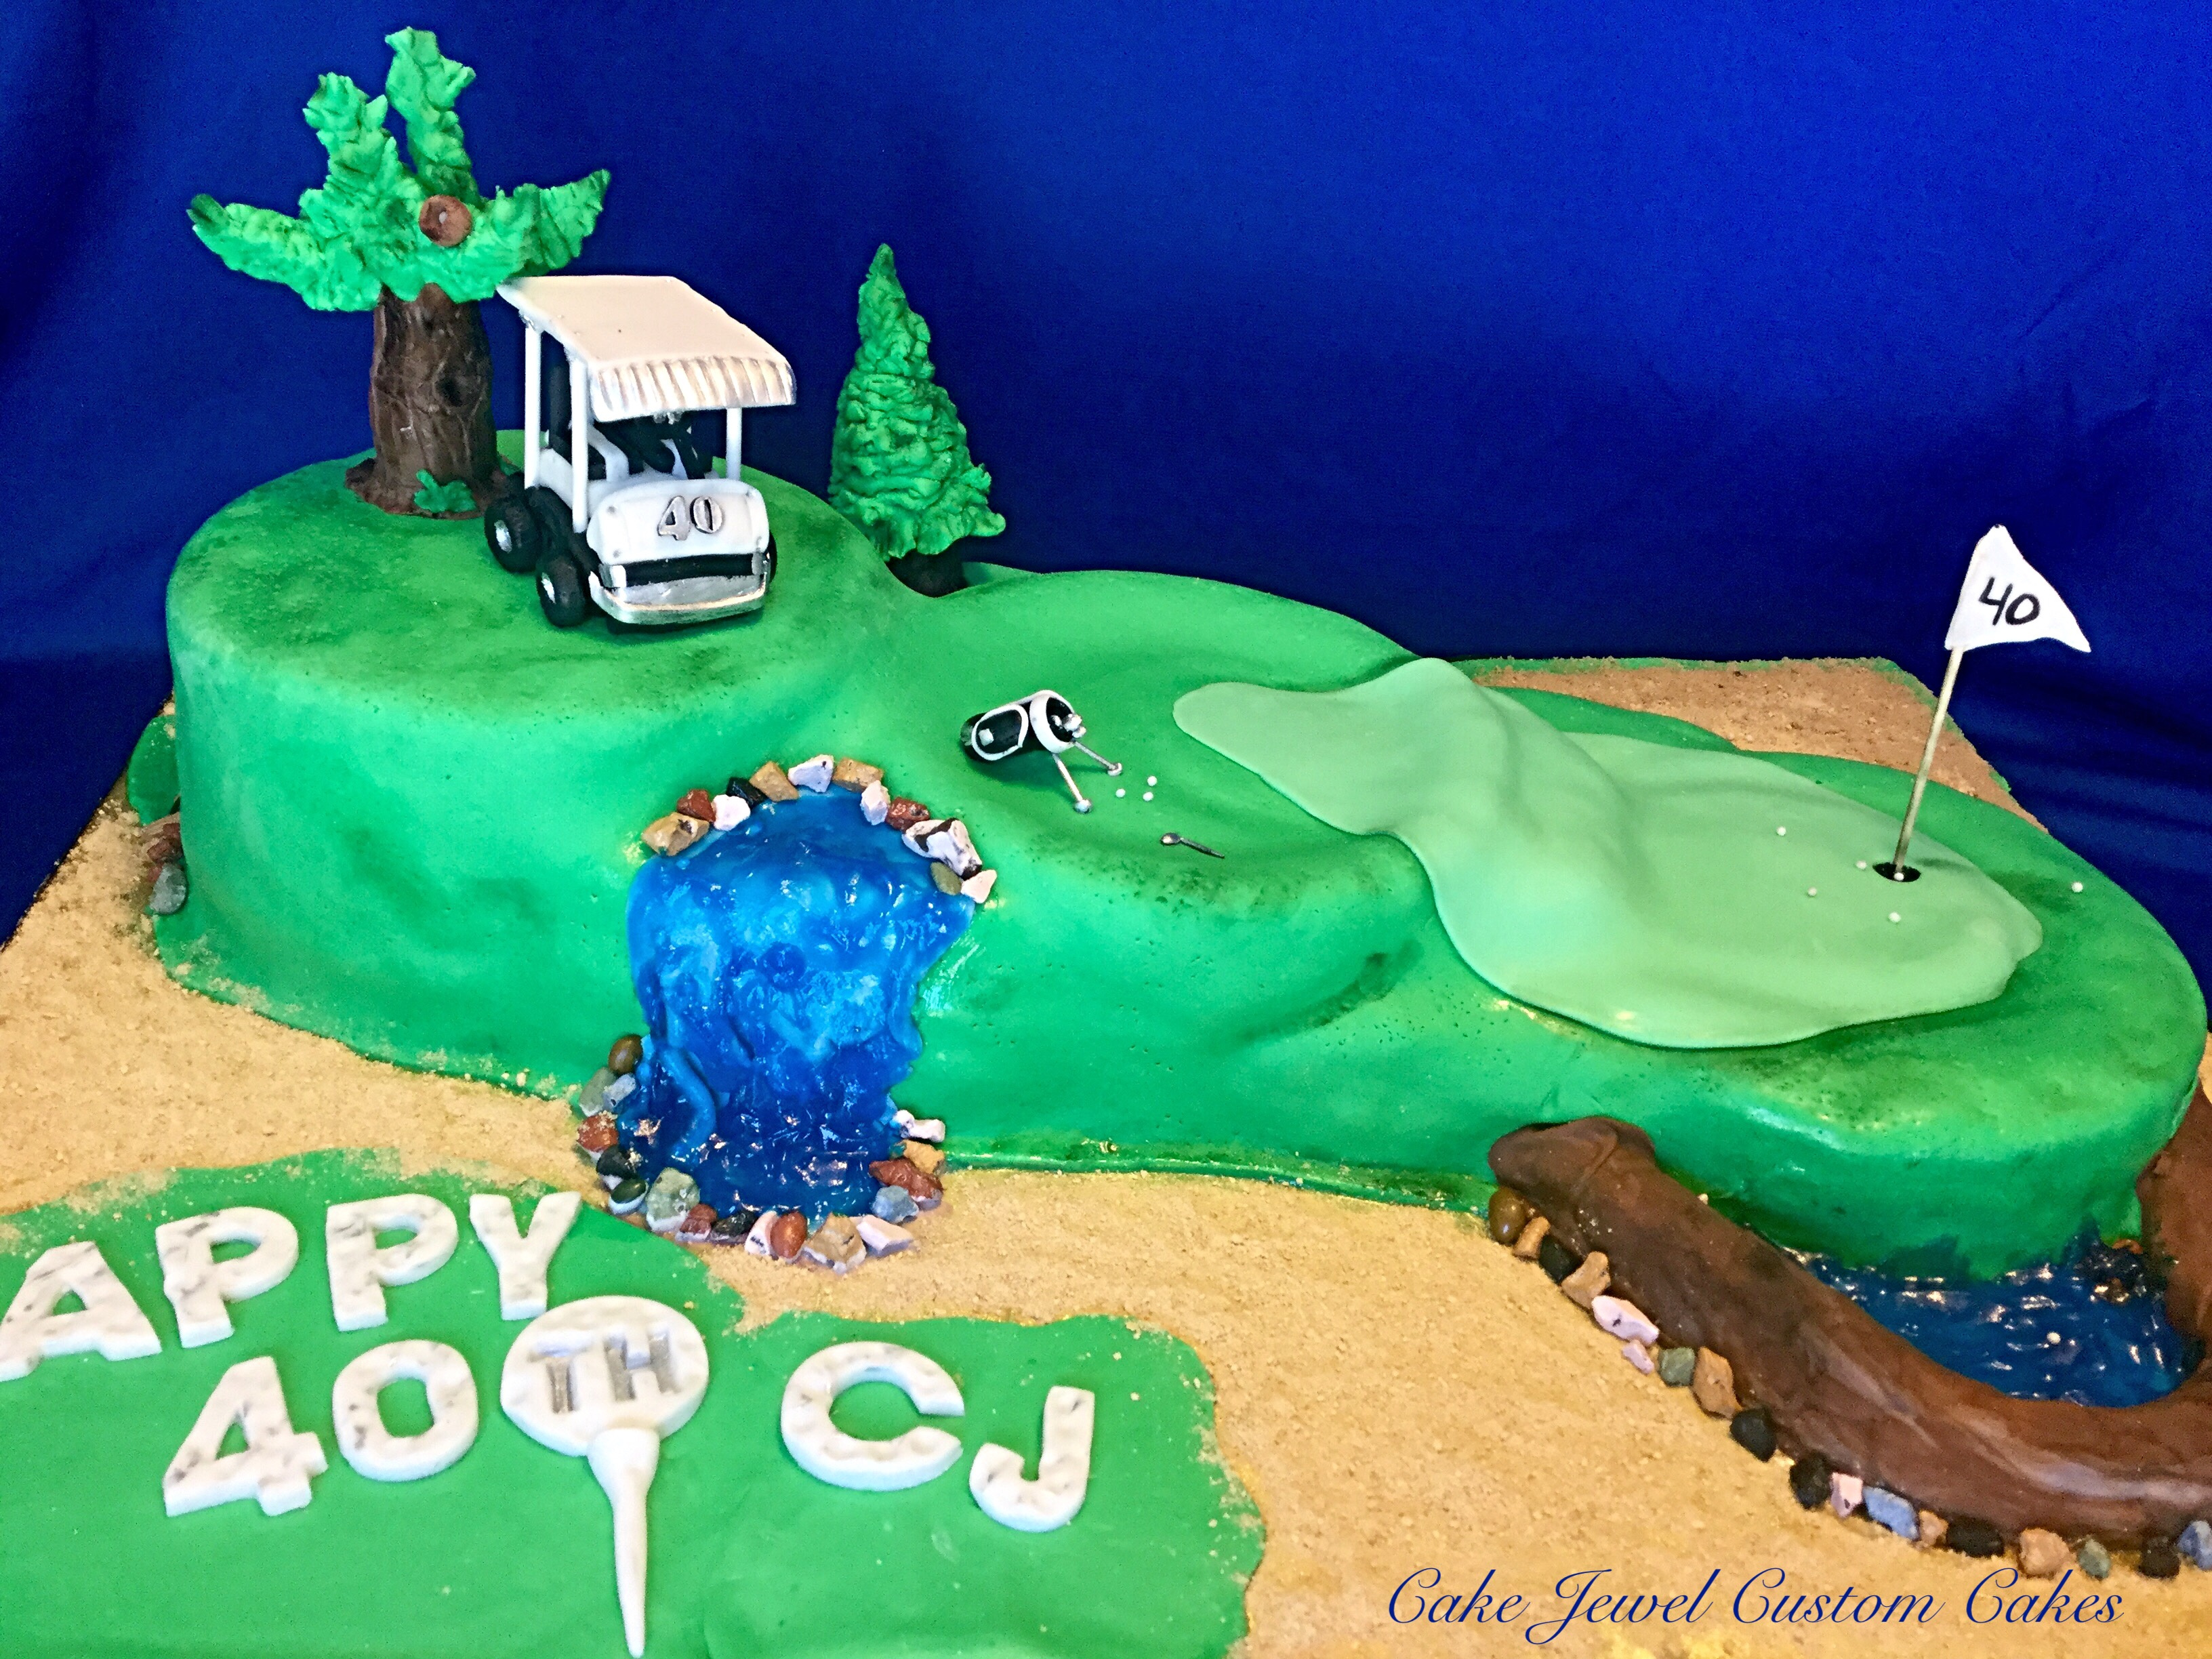 Golf course Cake with cart